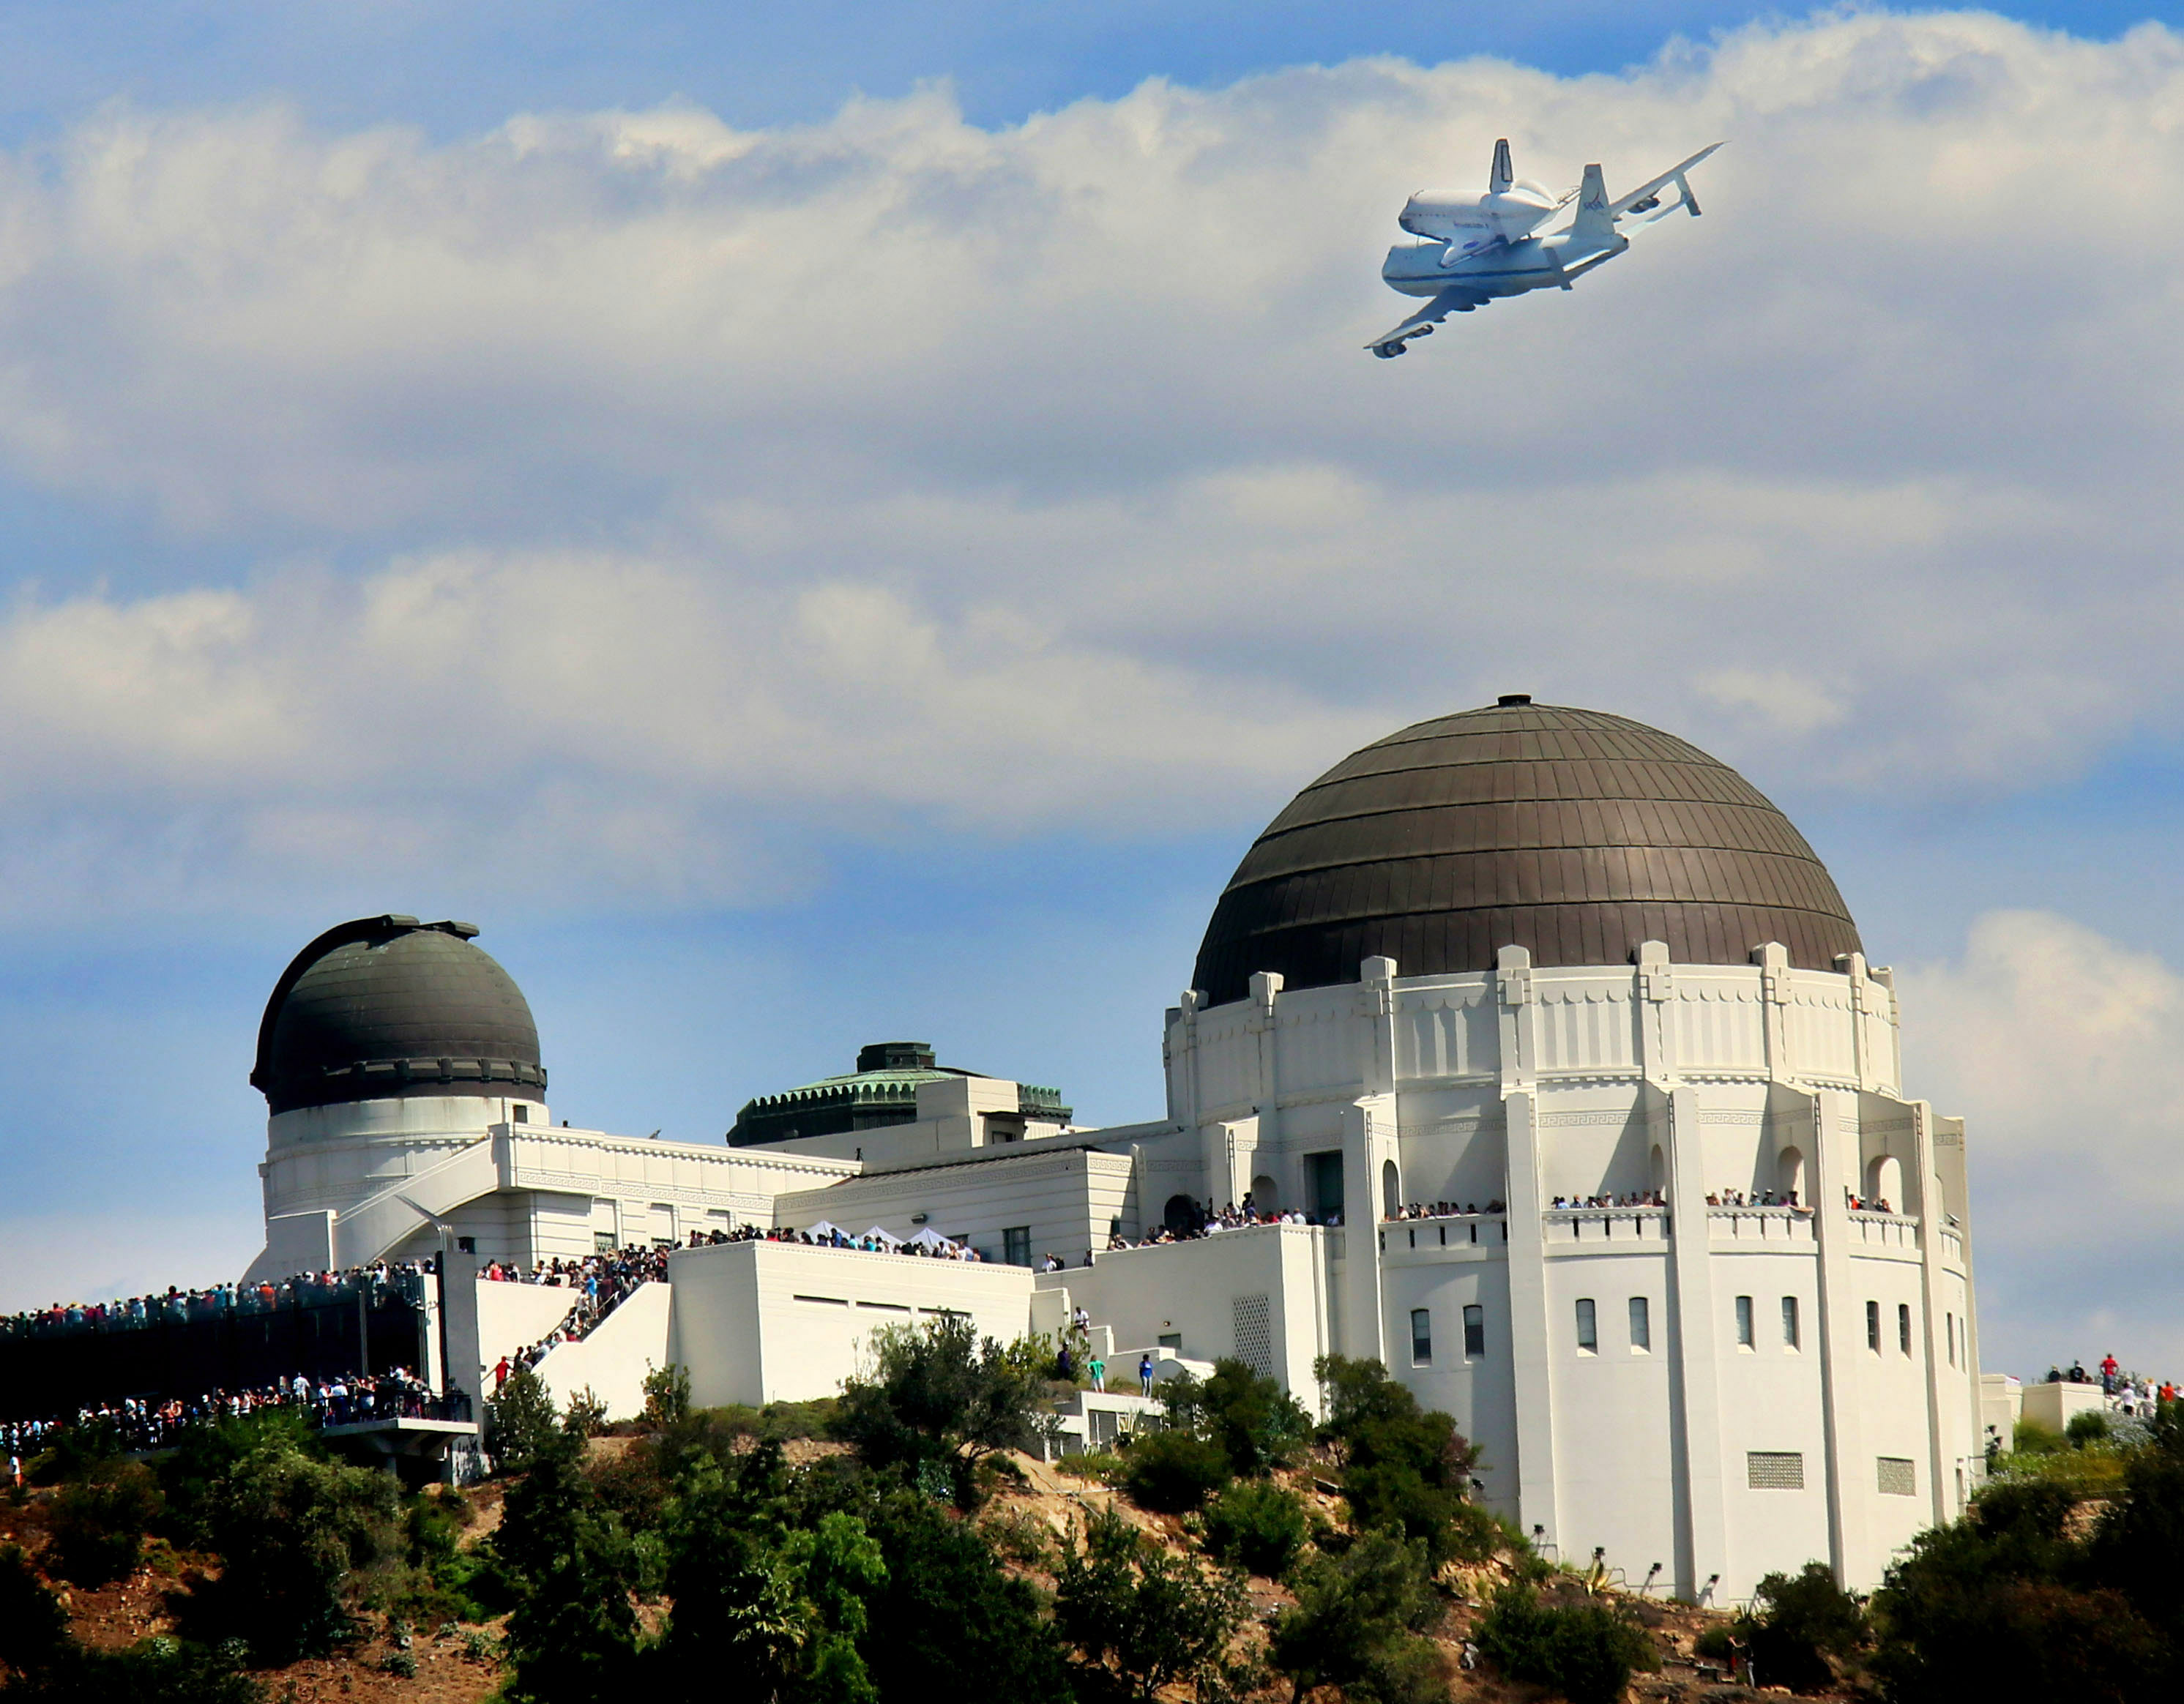 The space shuttle Endeavour flies atop NASA's Shuttle Carrier Aircraft or SCA over the Griffith Park Obervatory in Los Angeles.